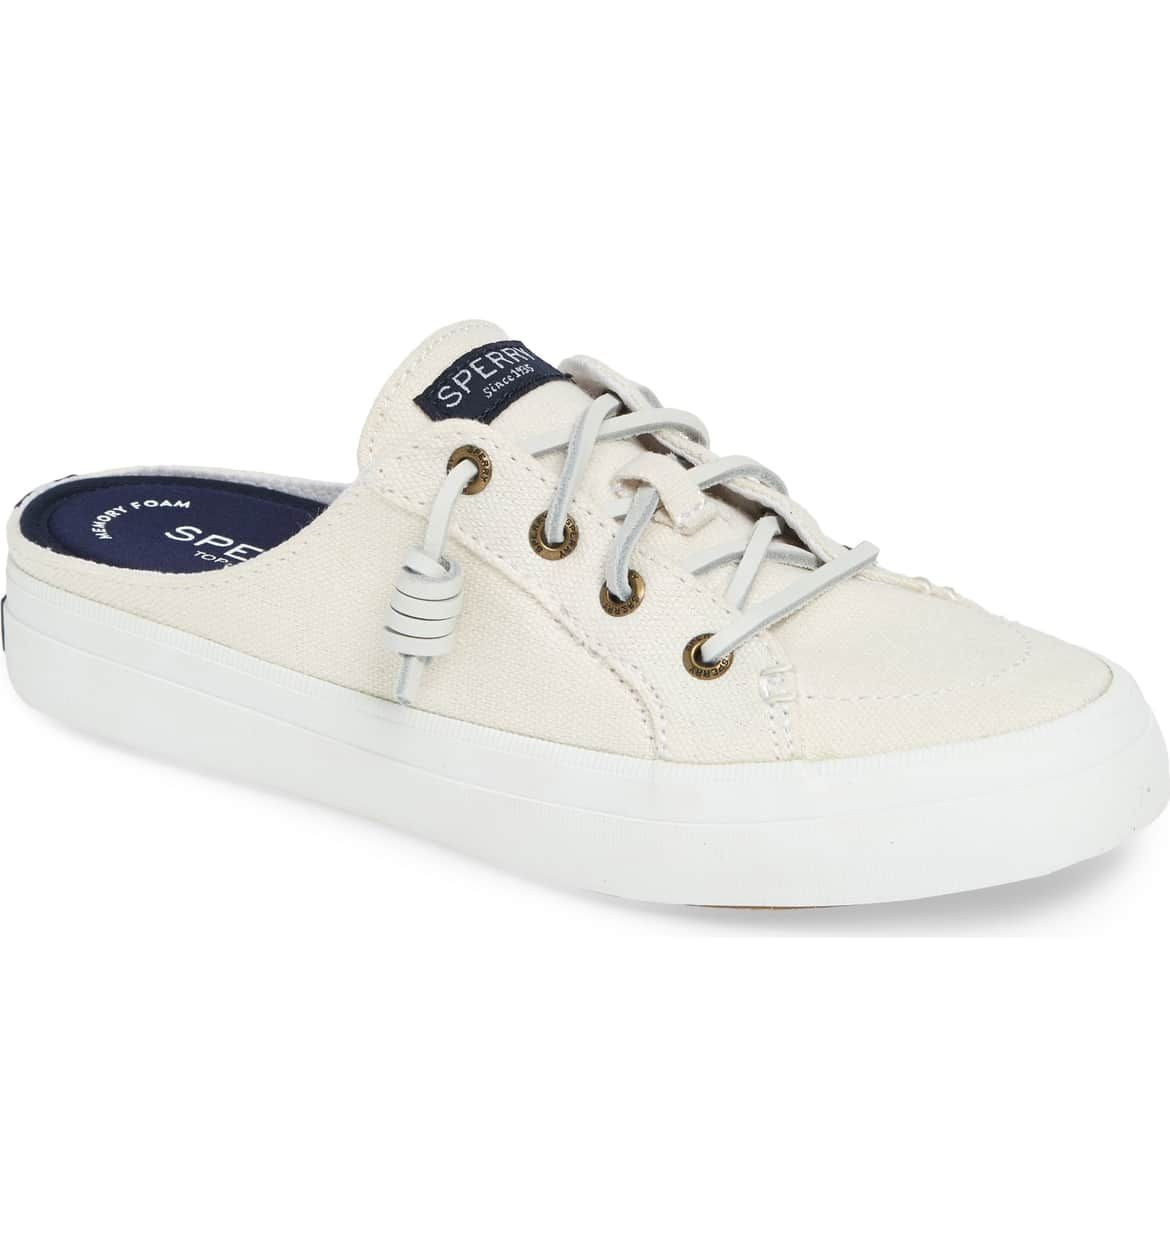 SPERRY Crest Vibe Mule, Main, color